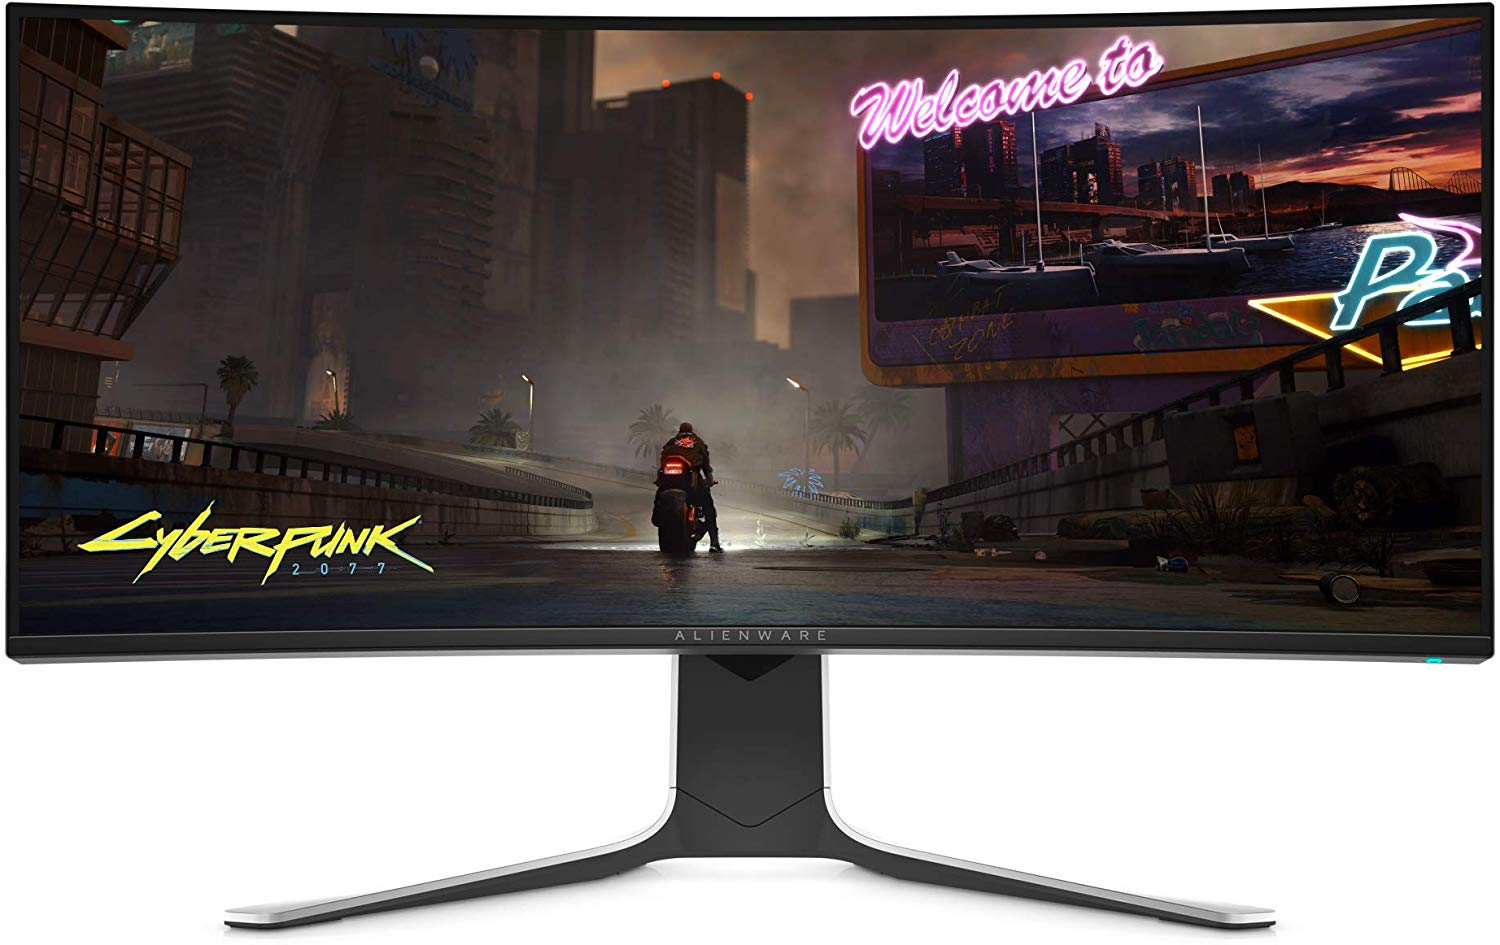 The New 34-inch 120Hz Alienware Curved Gaming Monitor with Nvidia G-Sync Support is $450 Cheaper